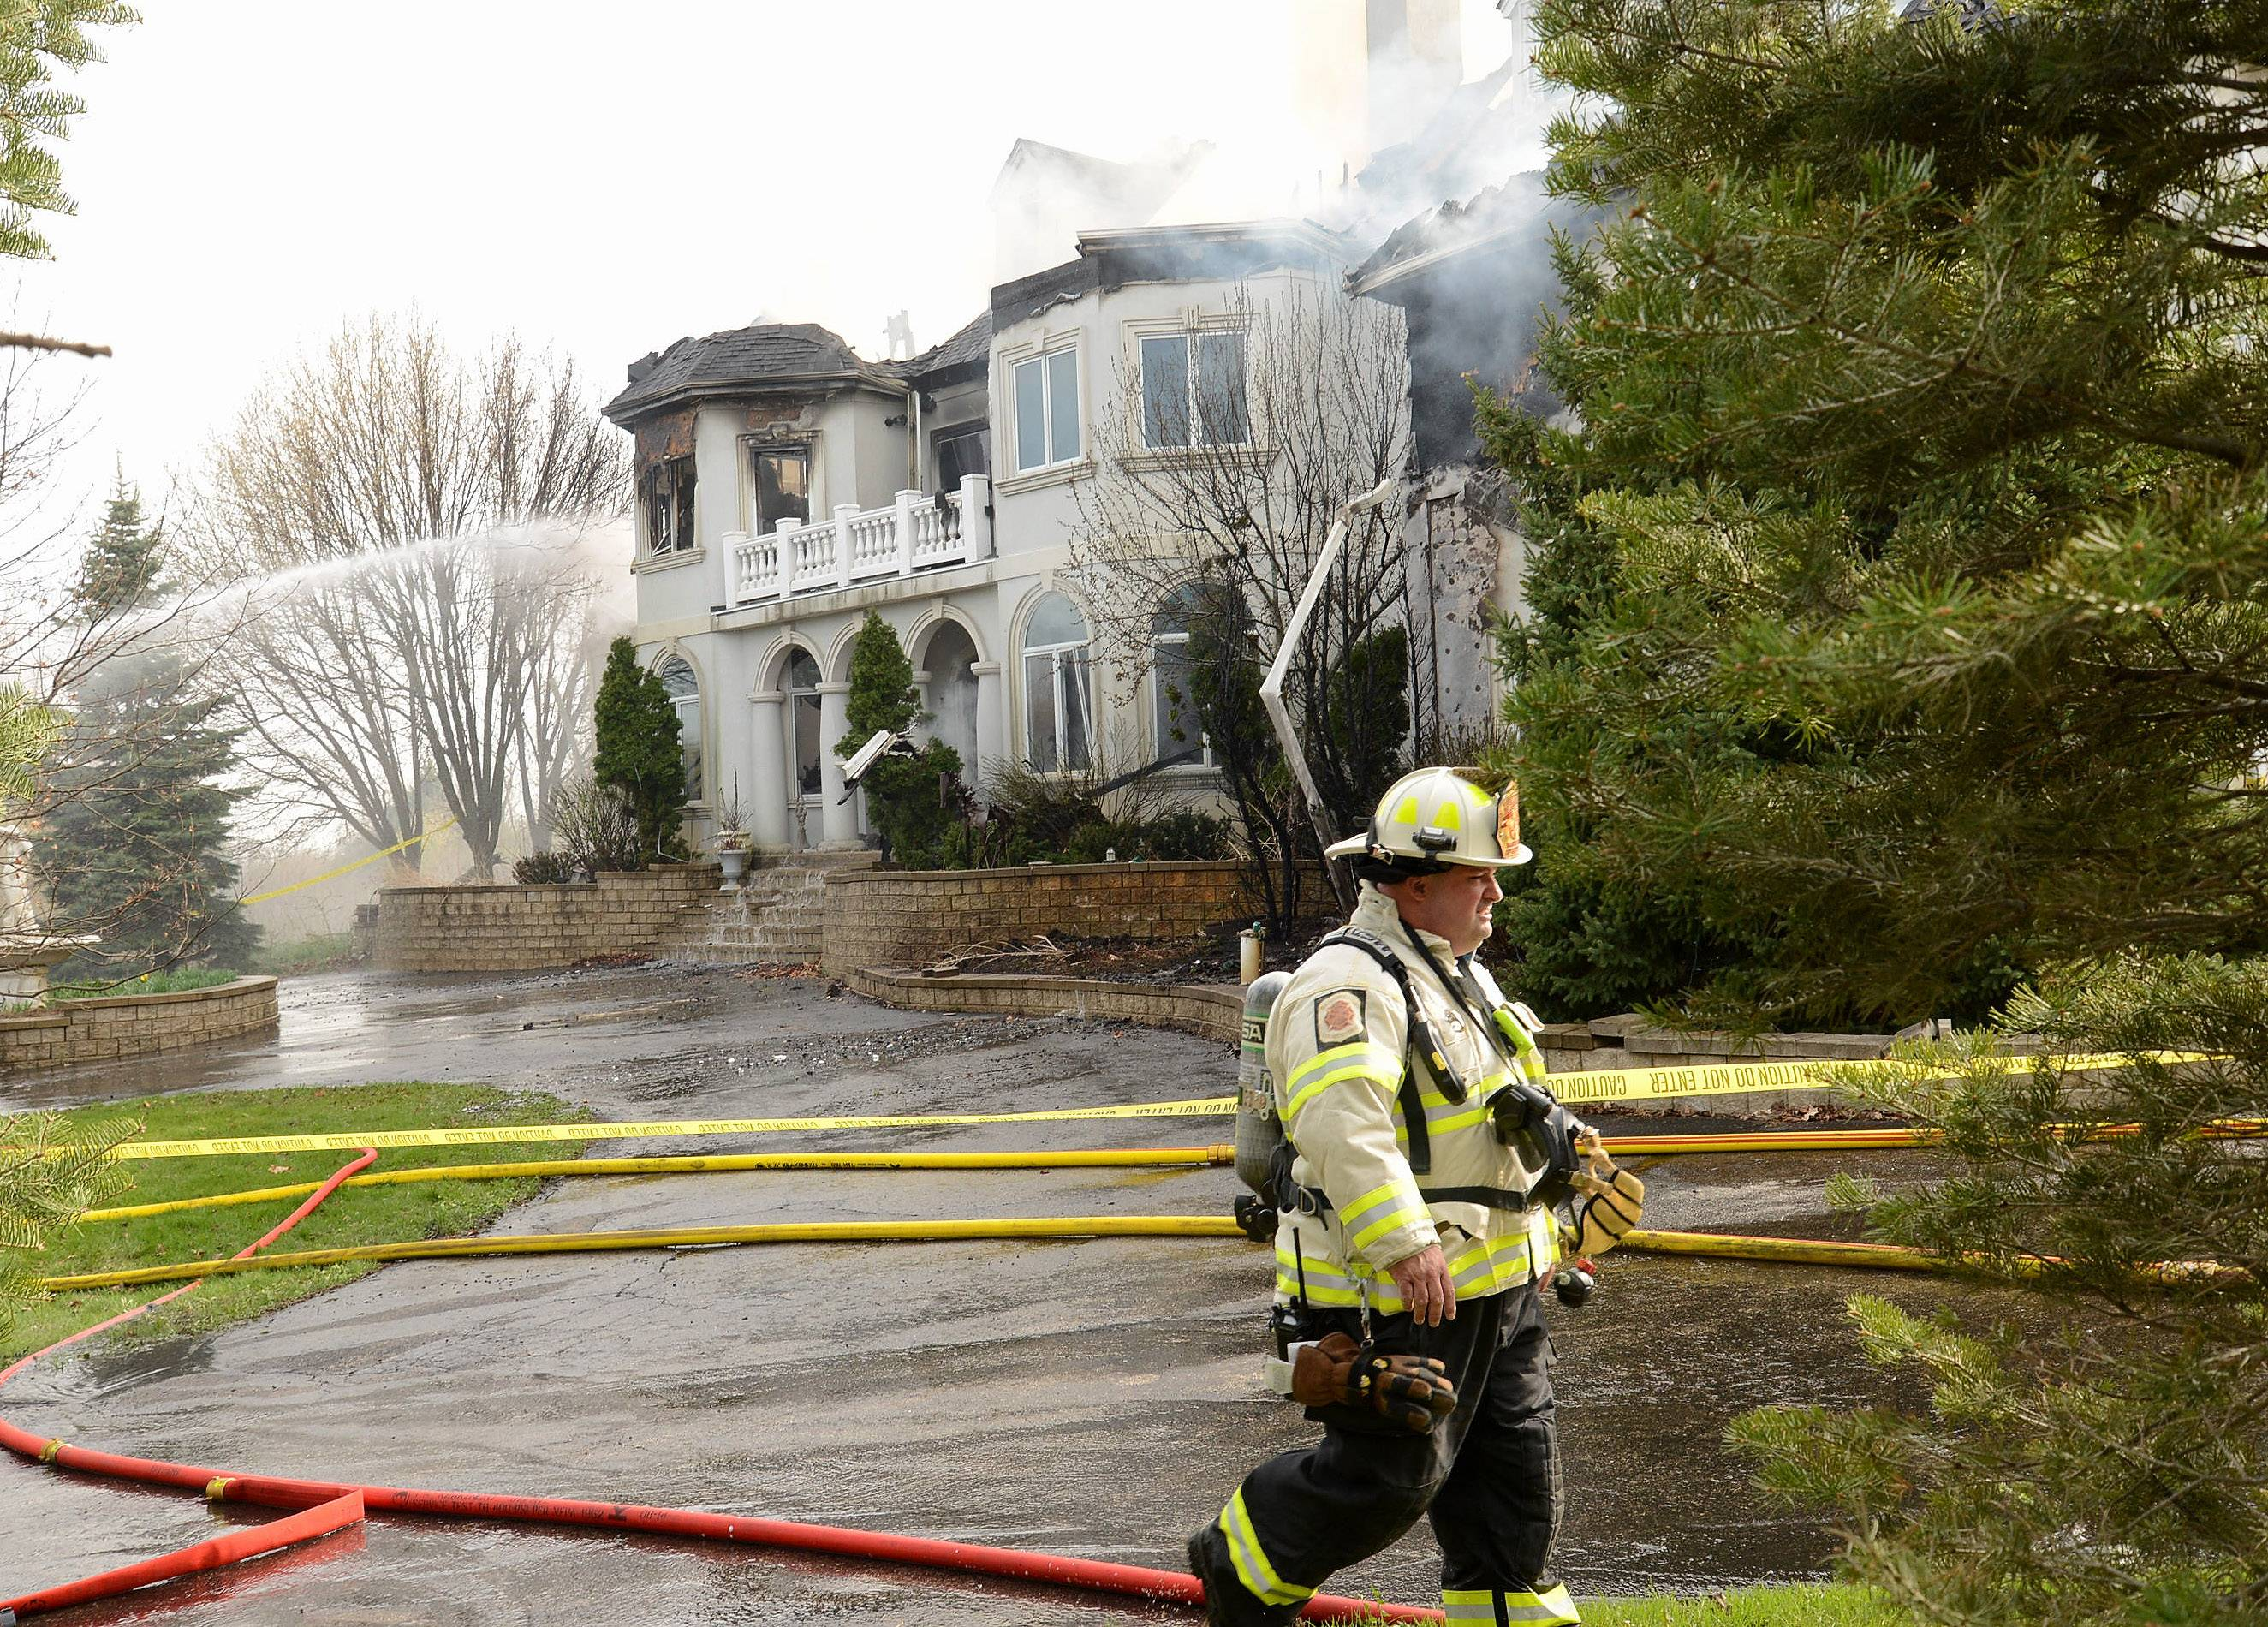 The massive fire that engulfed a Barrington Hills mansion April 18 served as a stark reminder of the challenges some suburban fire departments face when battling blazes in neighborhoods that lack hydrants or another easily accessible supply of water. More than a dozen tanker trucks from across the suburbs delivered water to the scene for four hours as firefighters worked to bring the blaze under control.